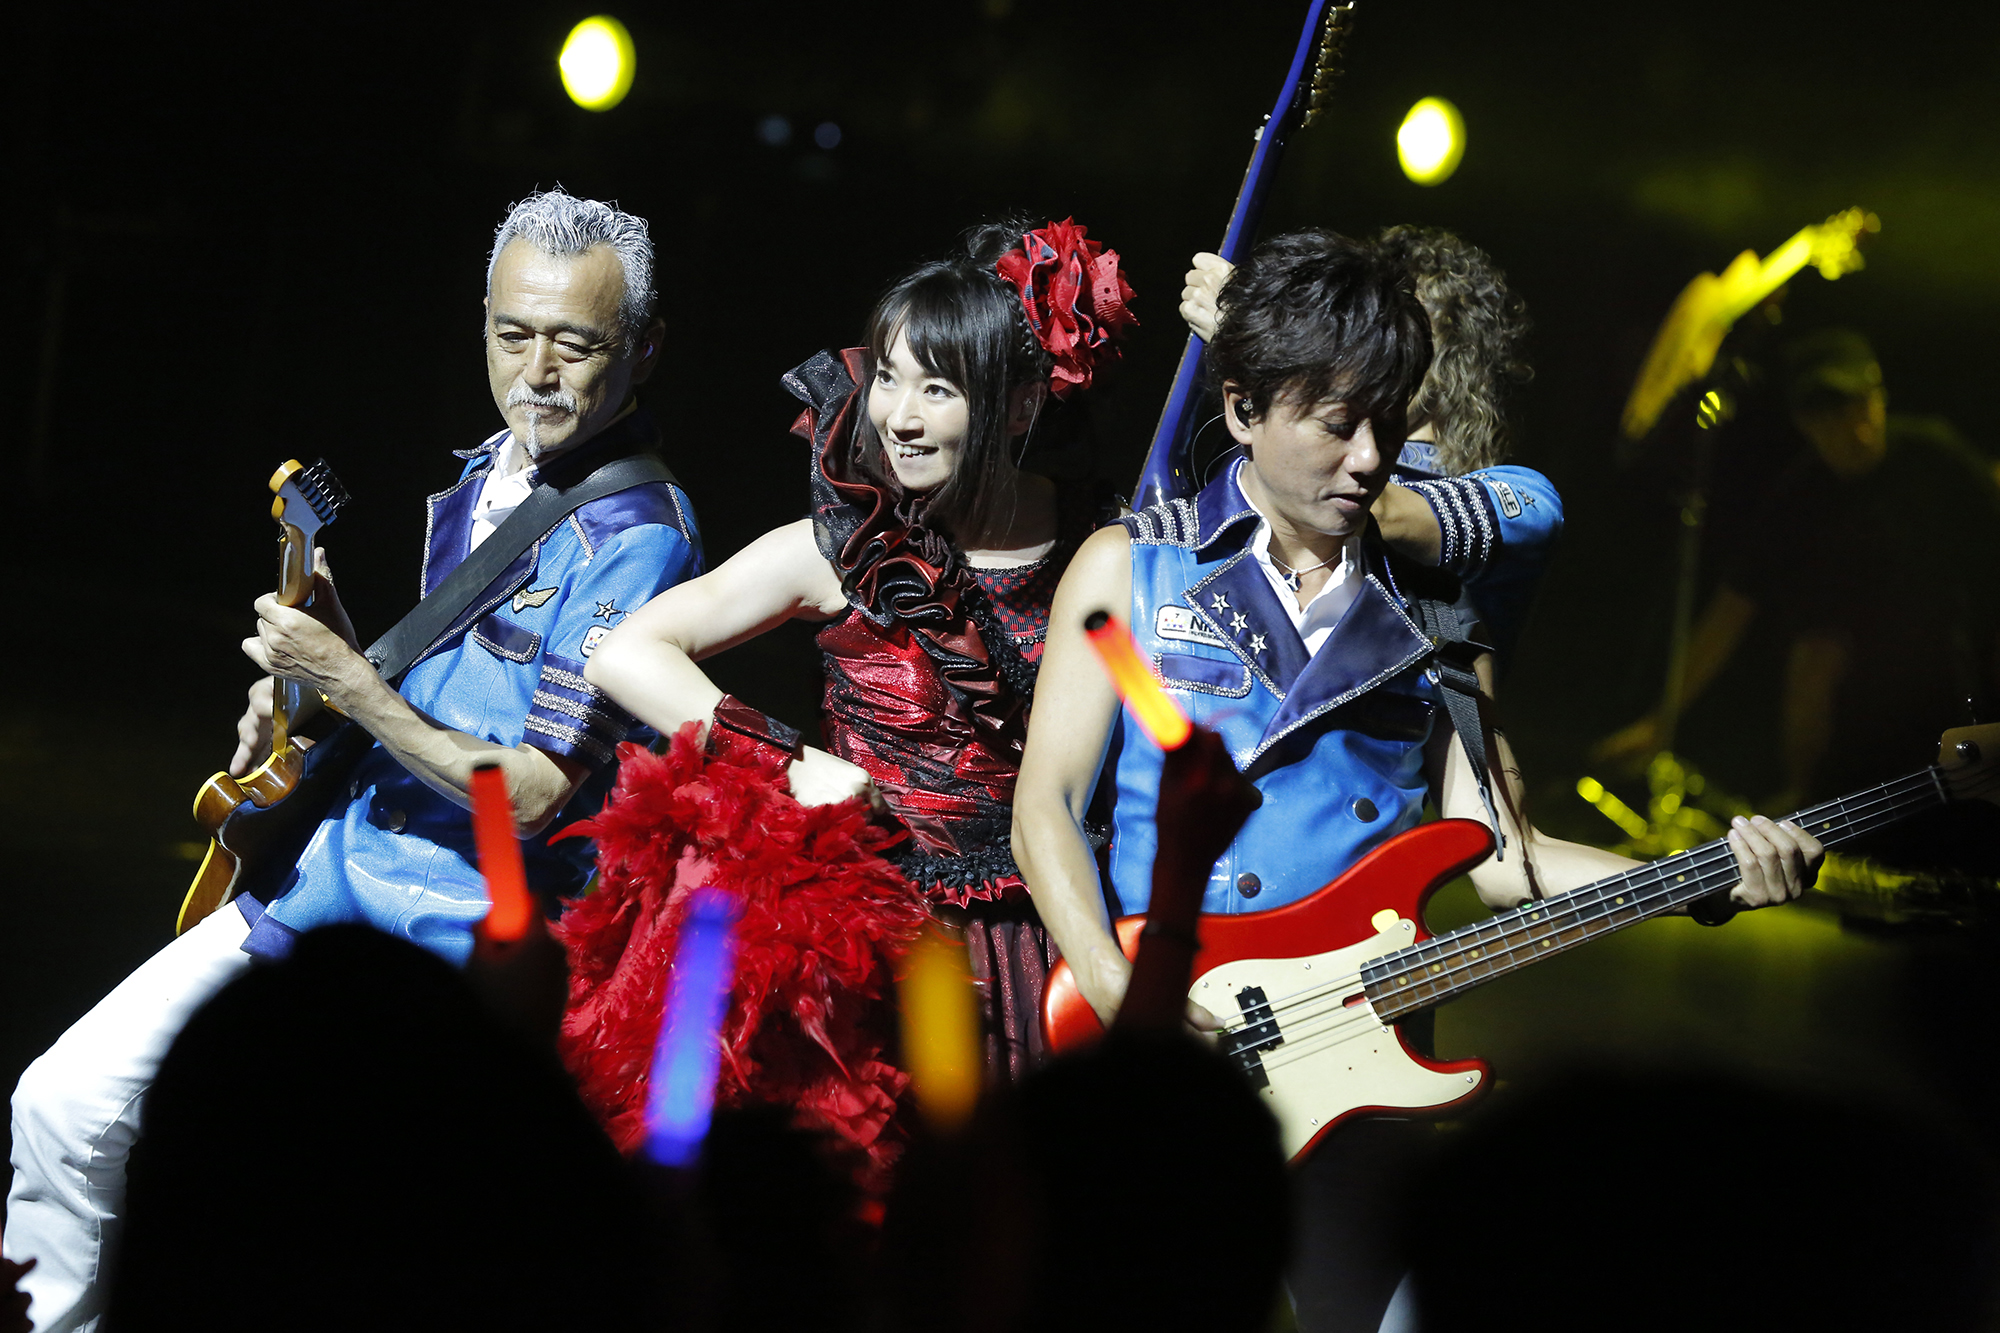 [Exclusive] Nana Mizuki Live Flight+ 2014 in Singapore Live Review